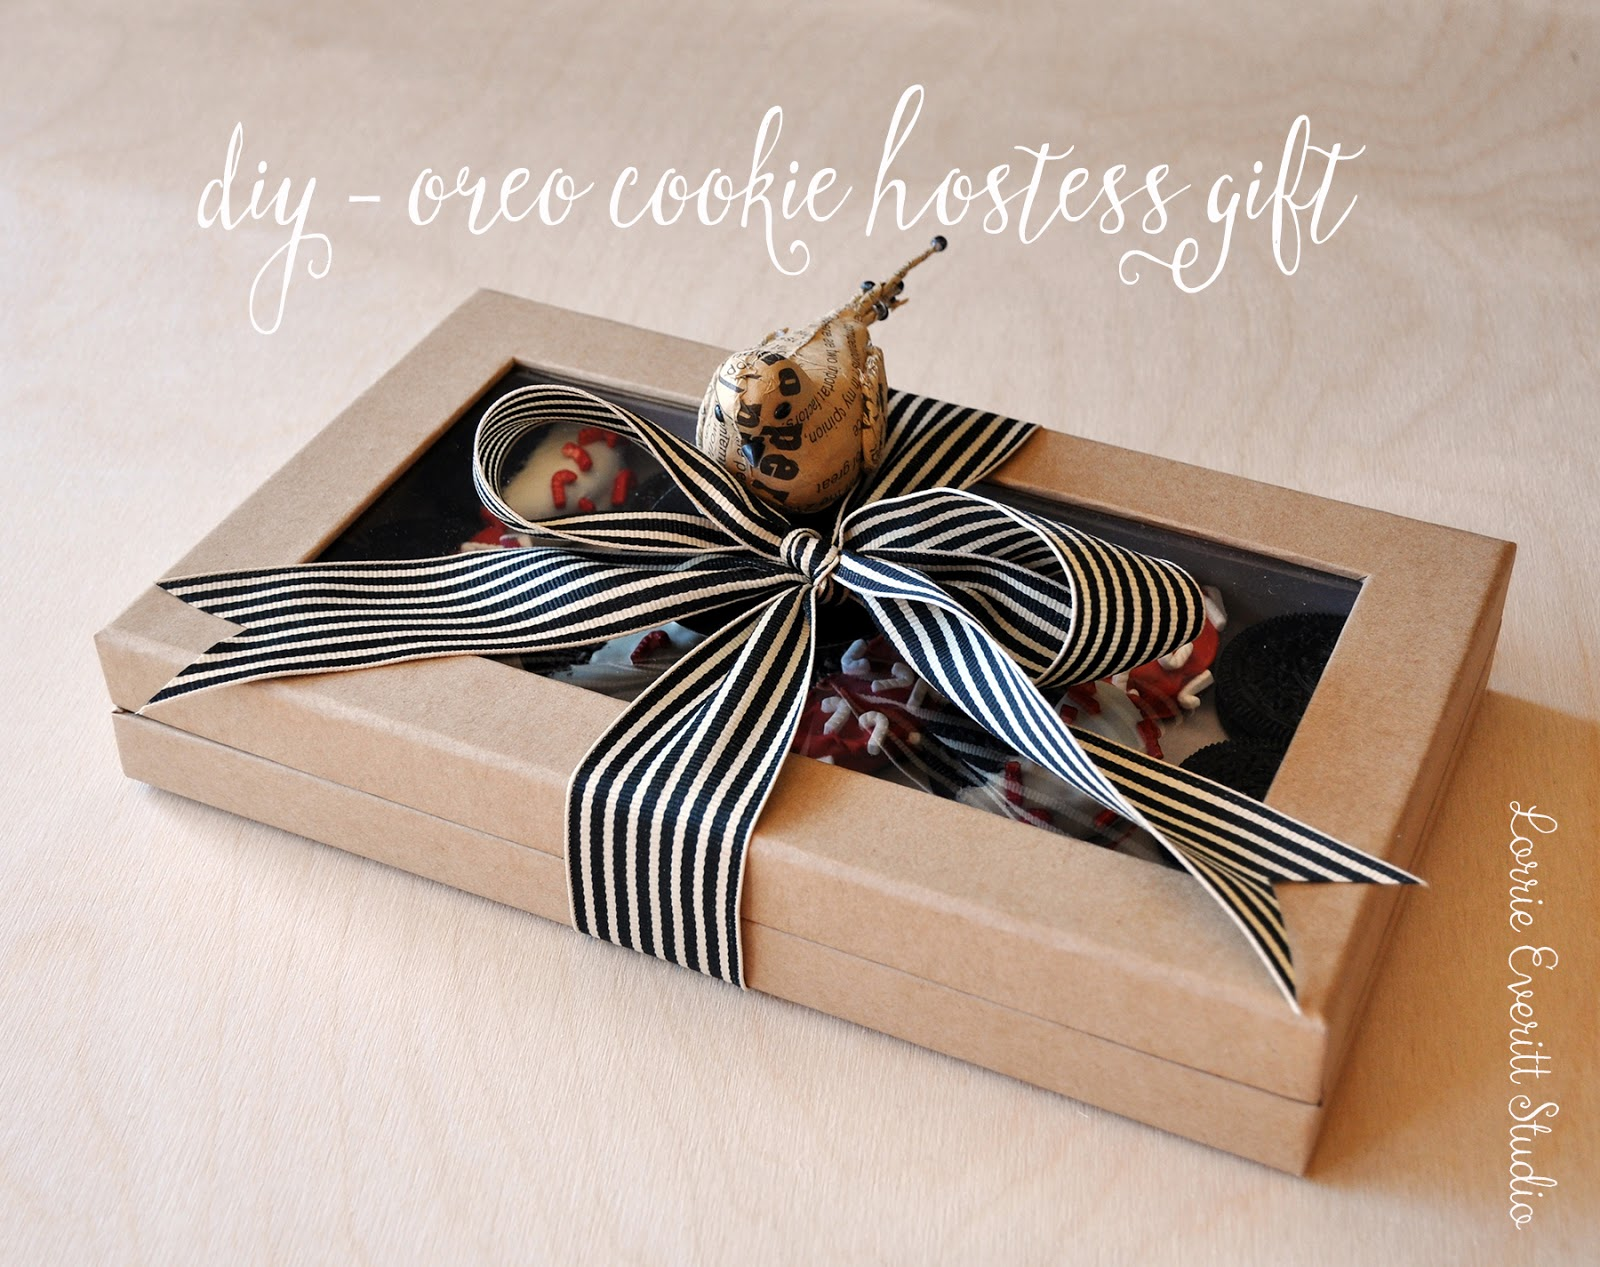 diy oreo cookie hostess gift